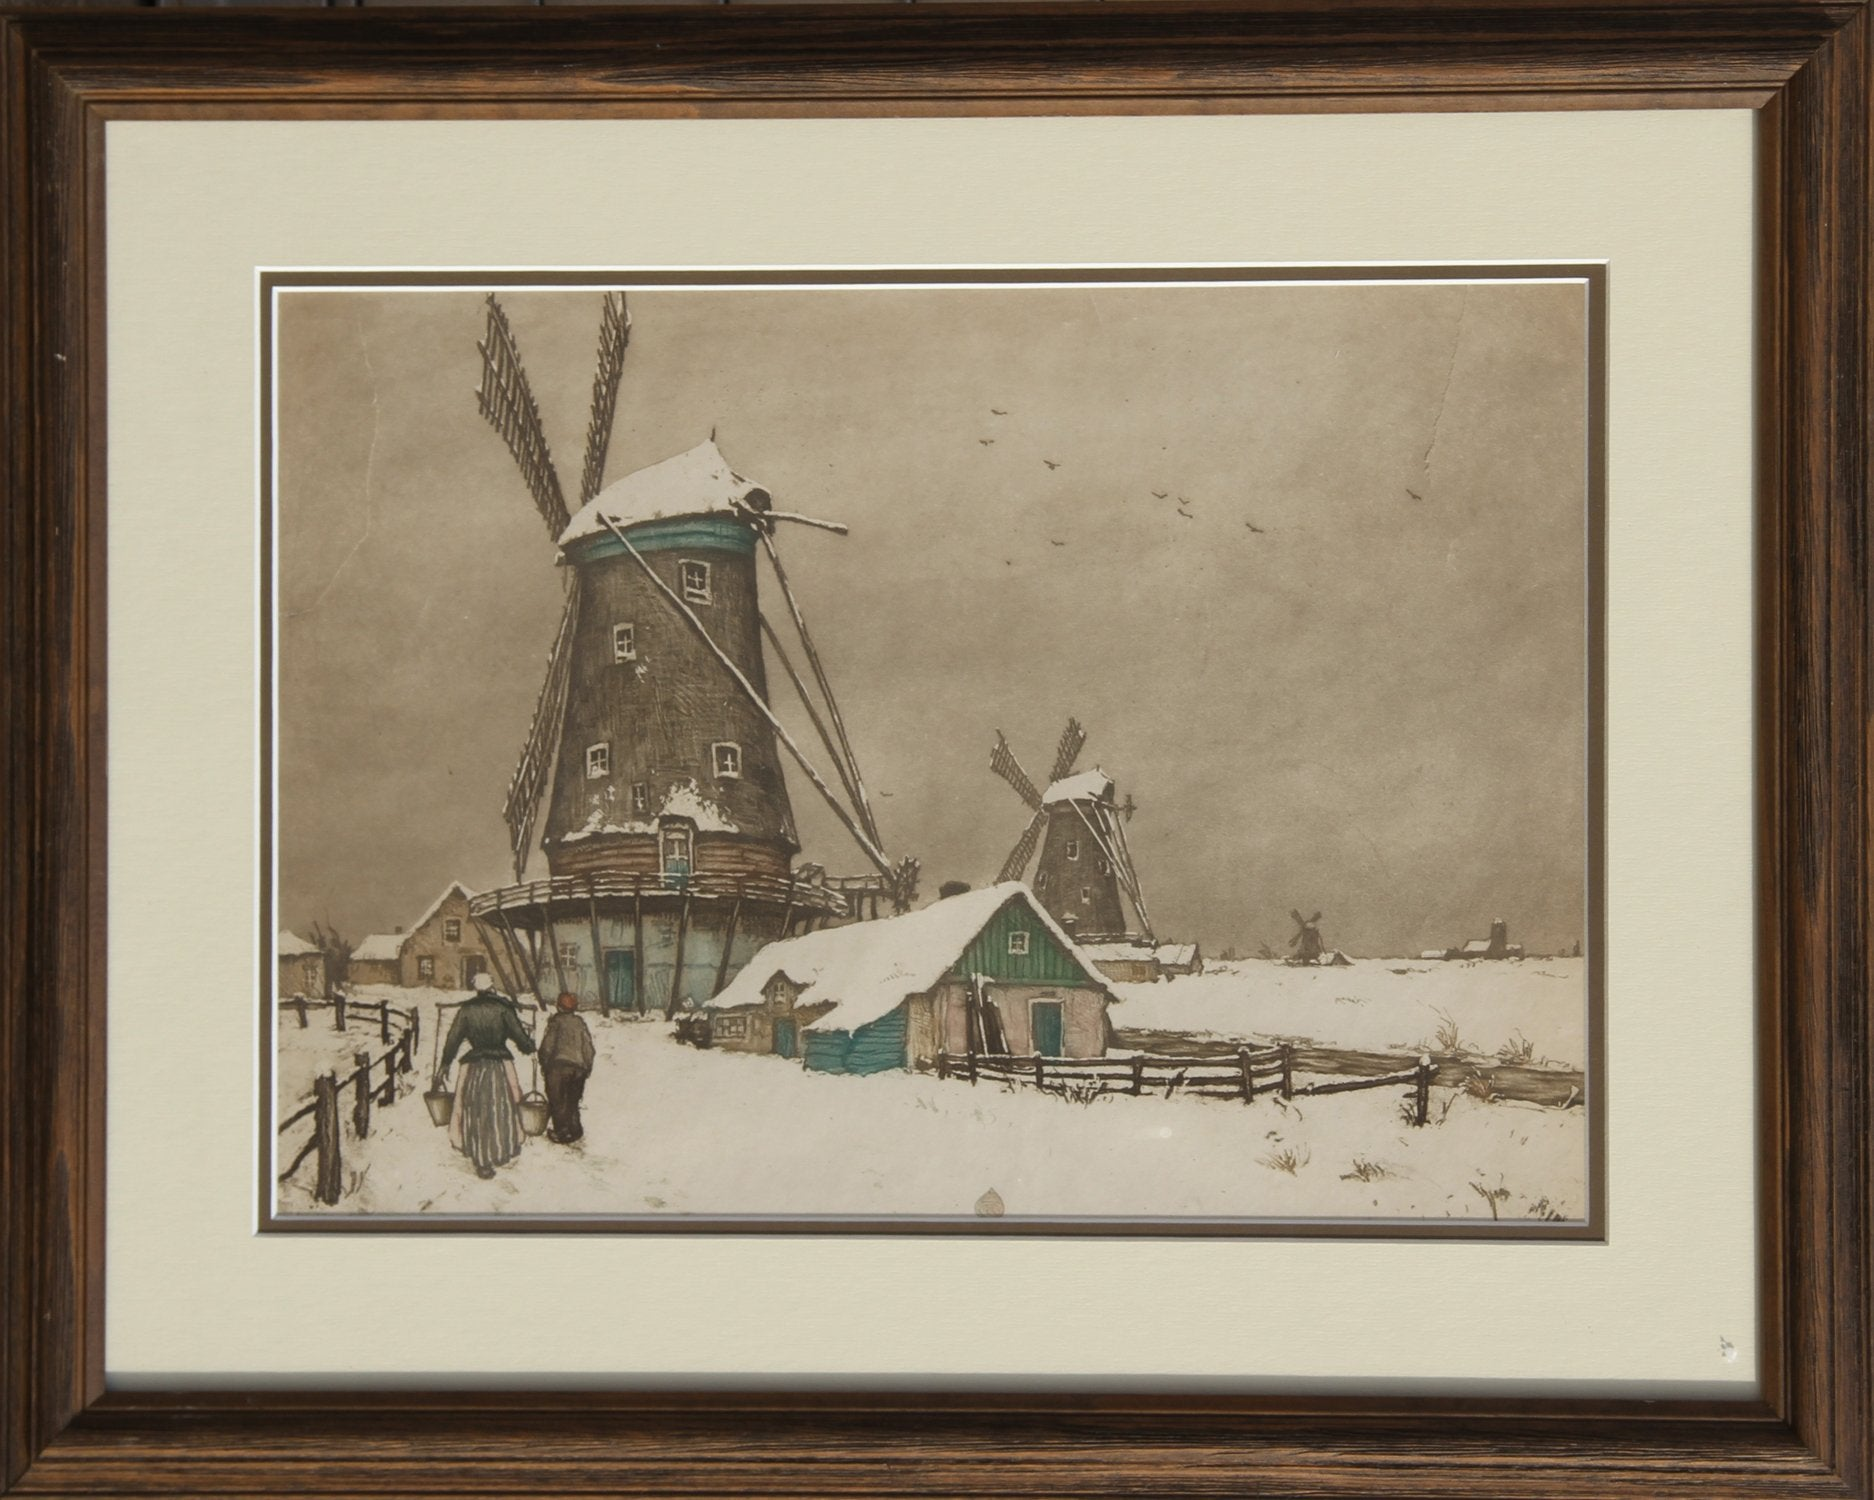 Tavik František Šimon, Dutch Landscape with Windmills, Winter Etching - RoGallery